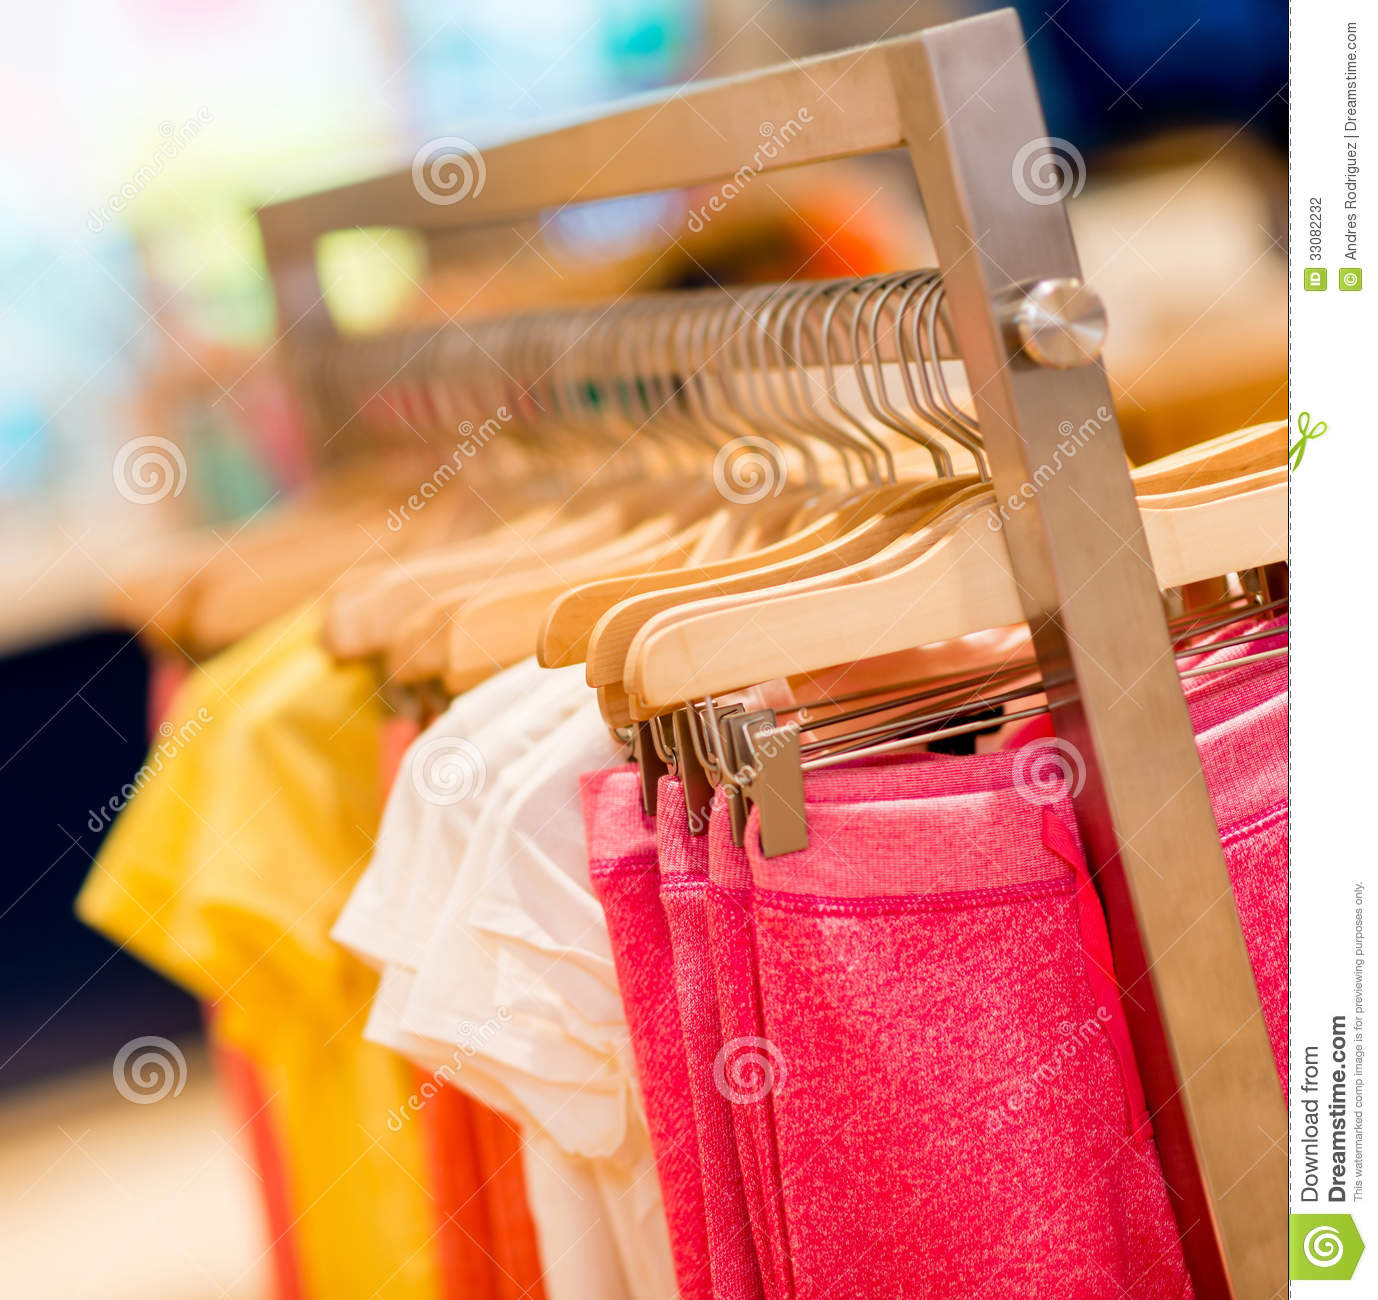 Clothing stores online Starting a retail clothing store